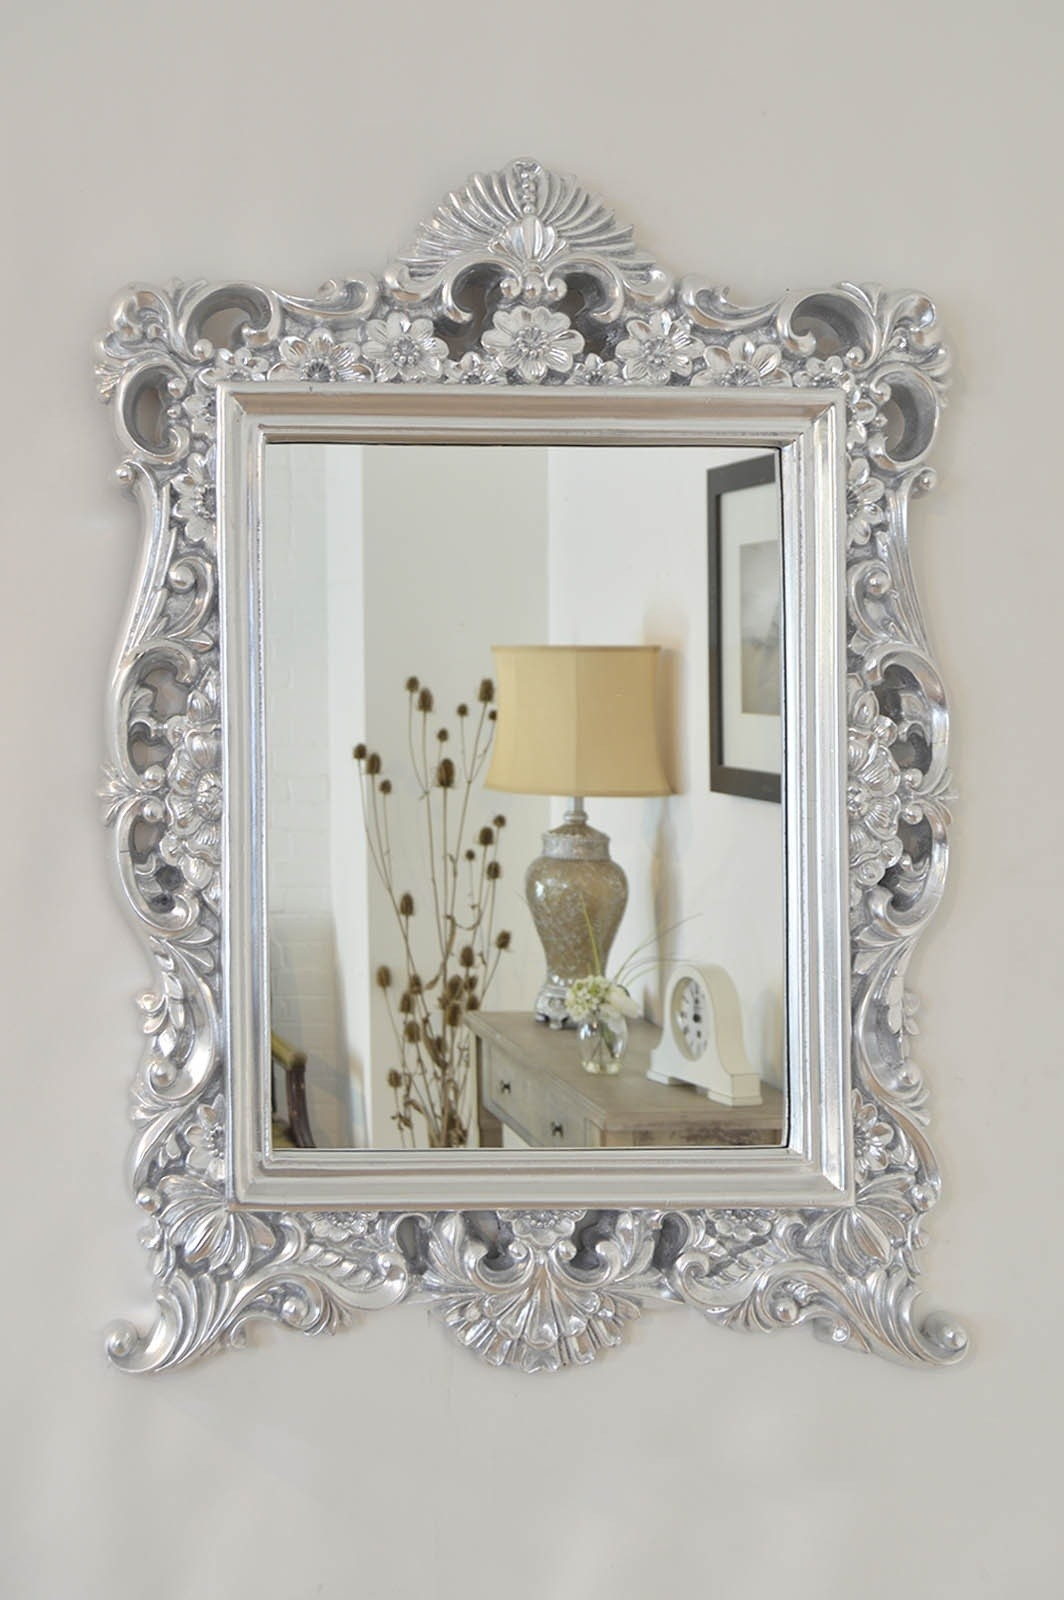 Large Silver Baroque Style Portrait Ornate Wall Mirror 2ft9 X 2ft1 In Silver Ornate Framed Mirror (Image 6 of 15)